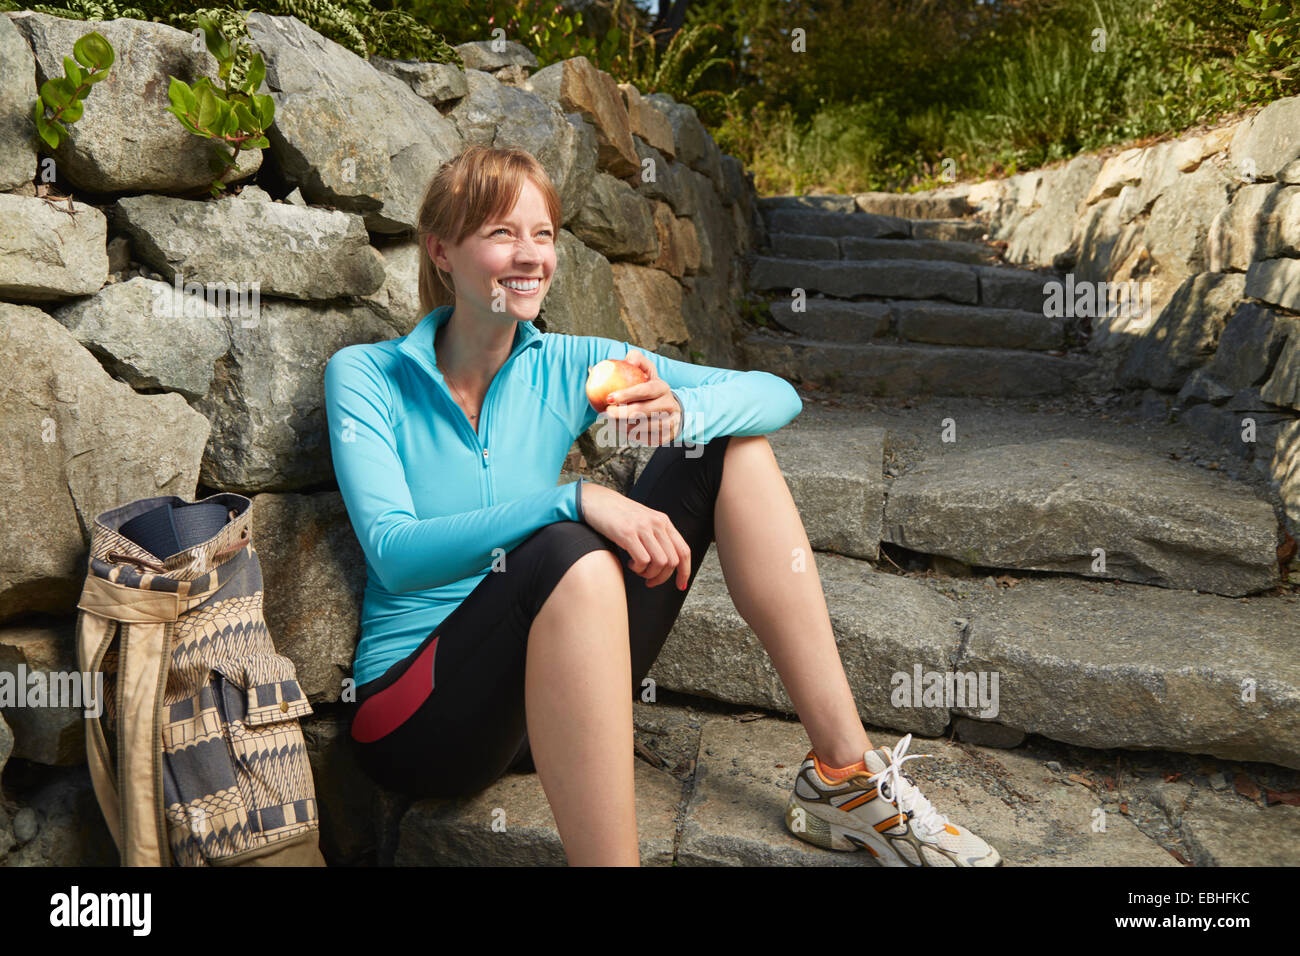 Mid adult female runner Taking a break in park manger une pomme Photo Stock